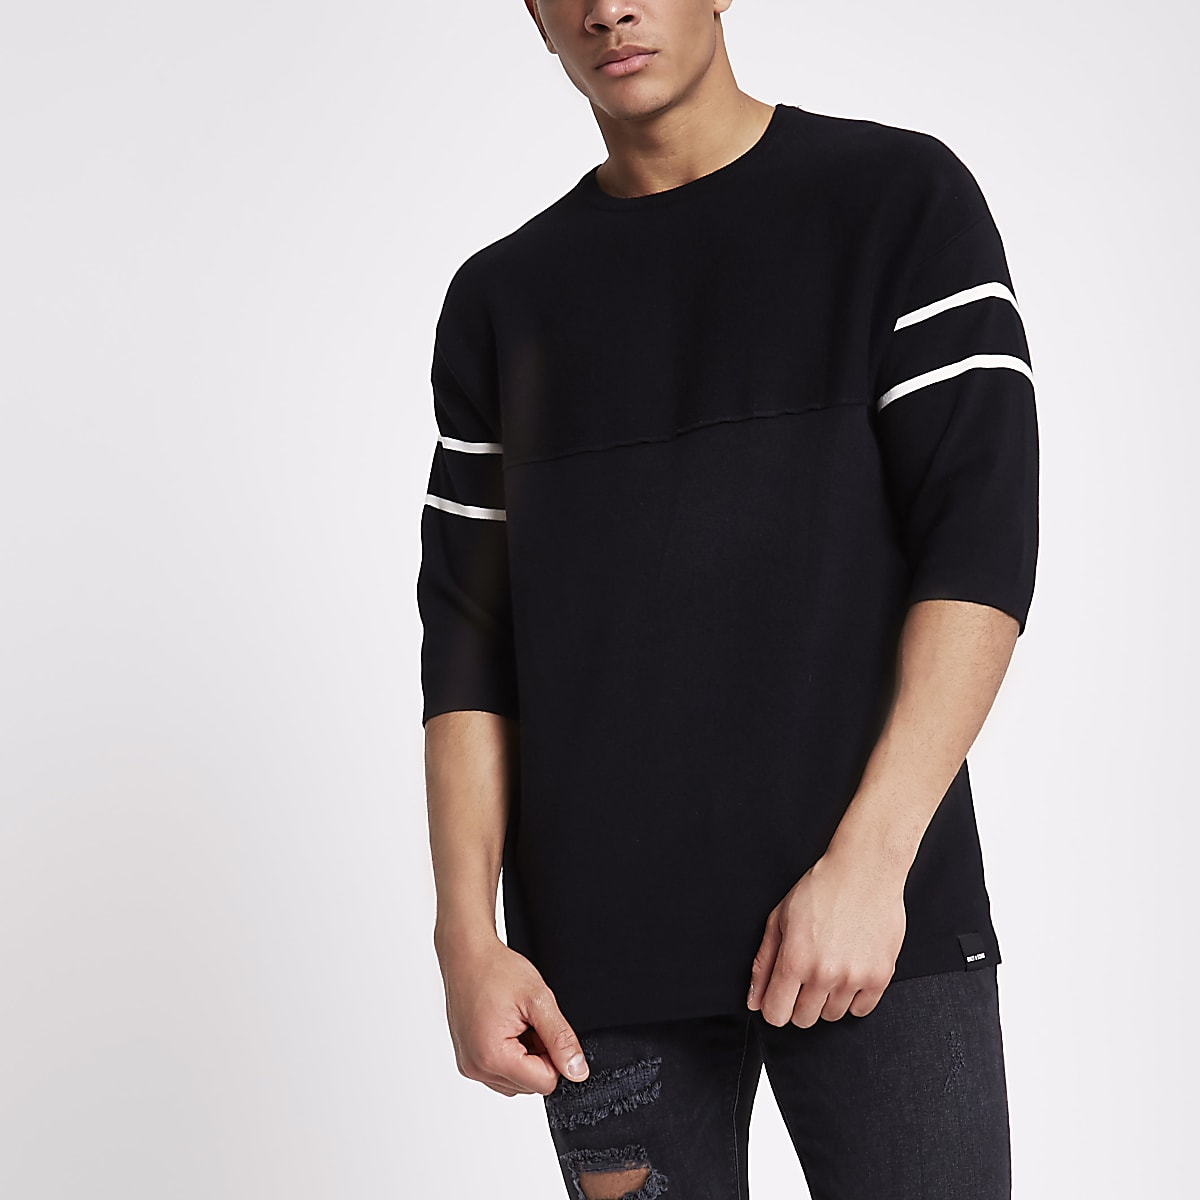 hot new products latest style professional Only & Sons black short sleeve knit jumper